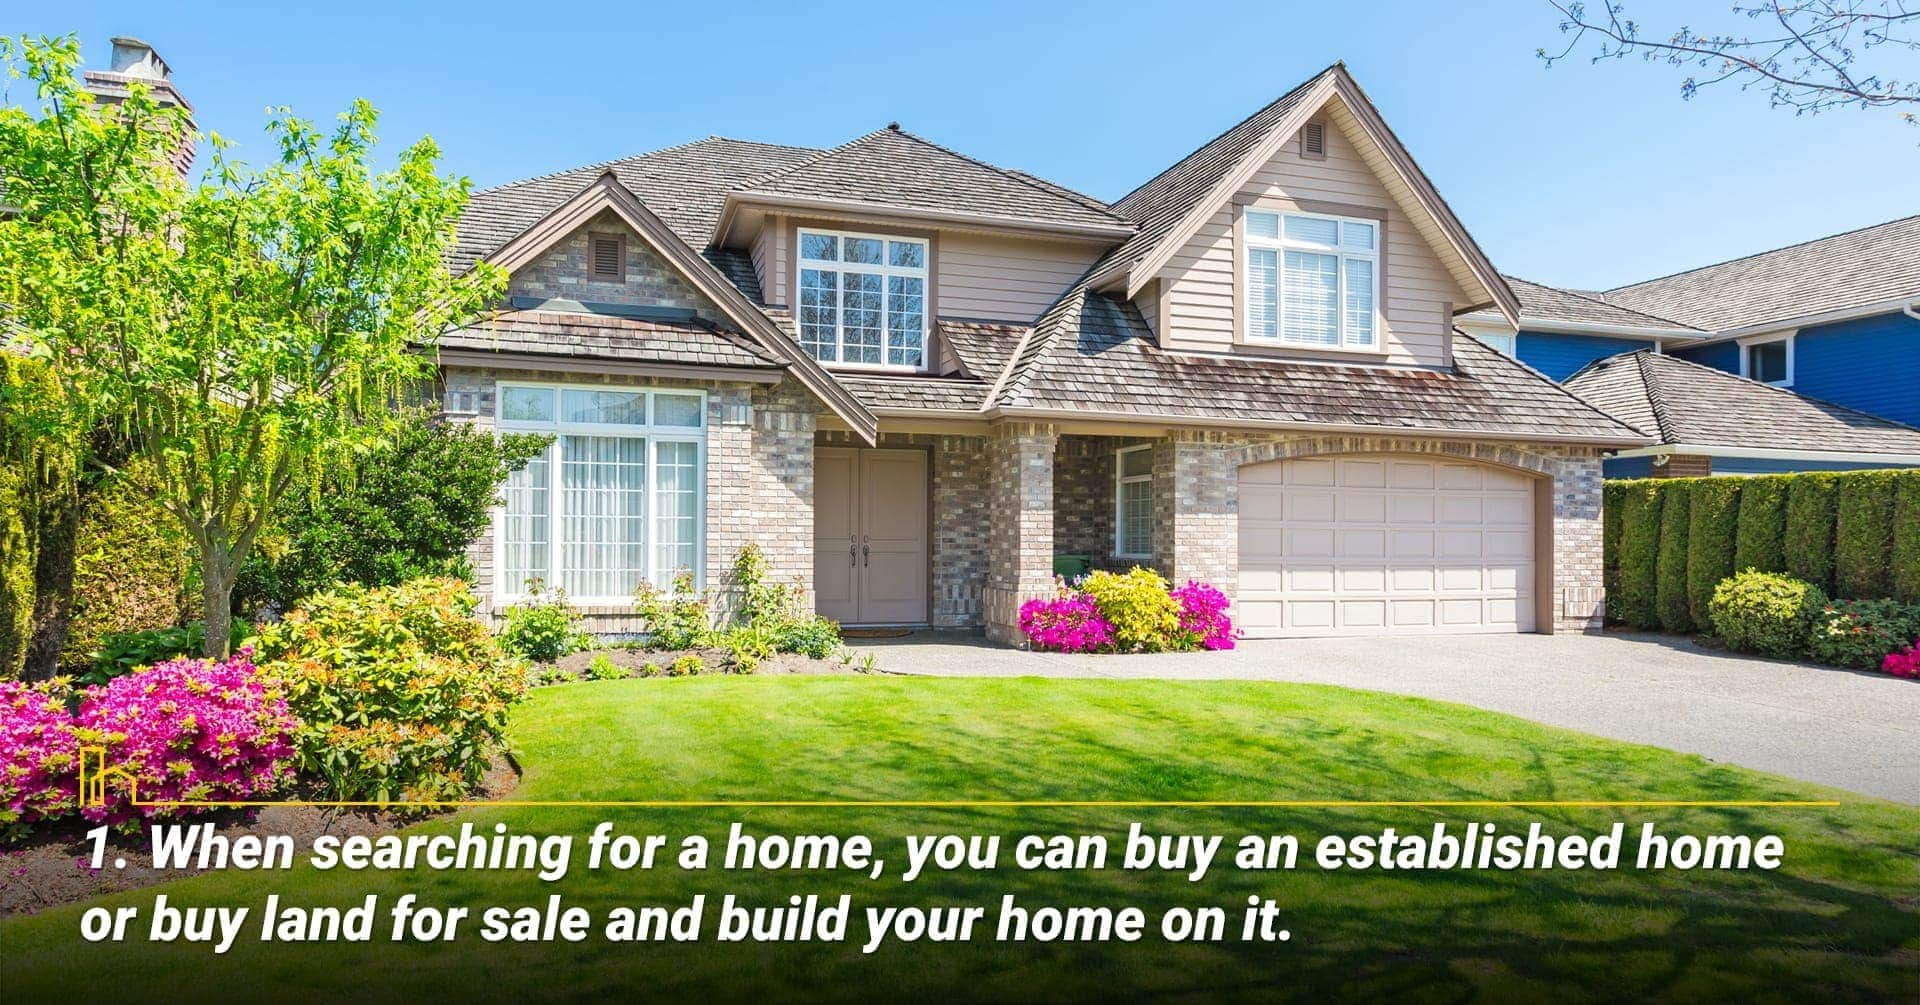 1. When searching for a home, you can buy an established home or buy land for sale and build your home on it.